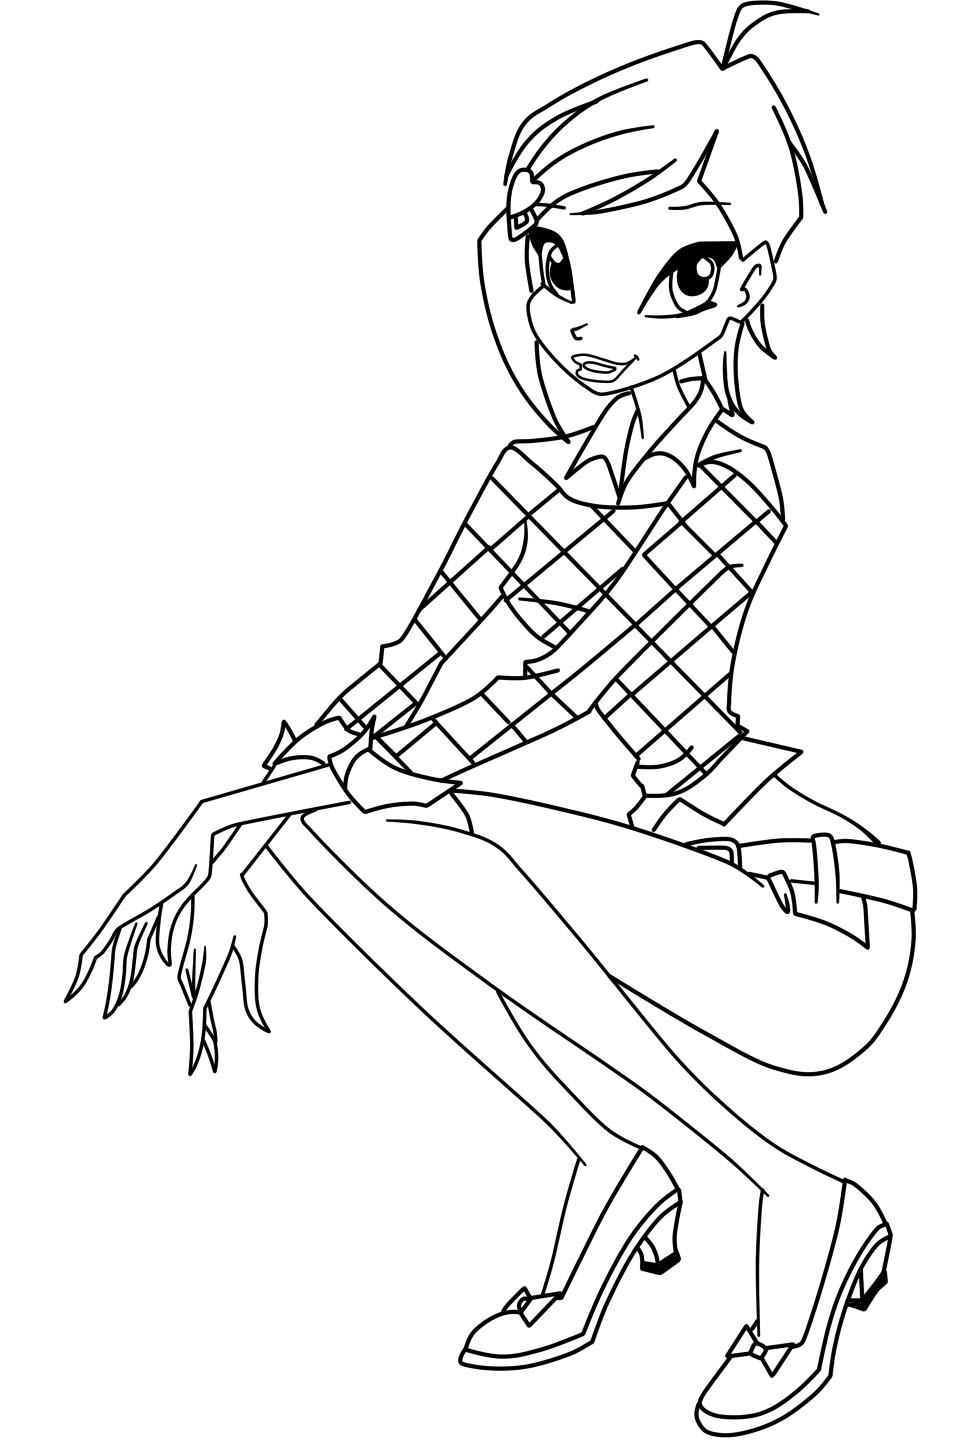 winxs club coloring pages - photo#42